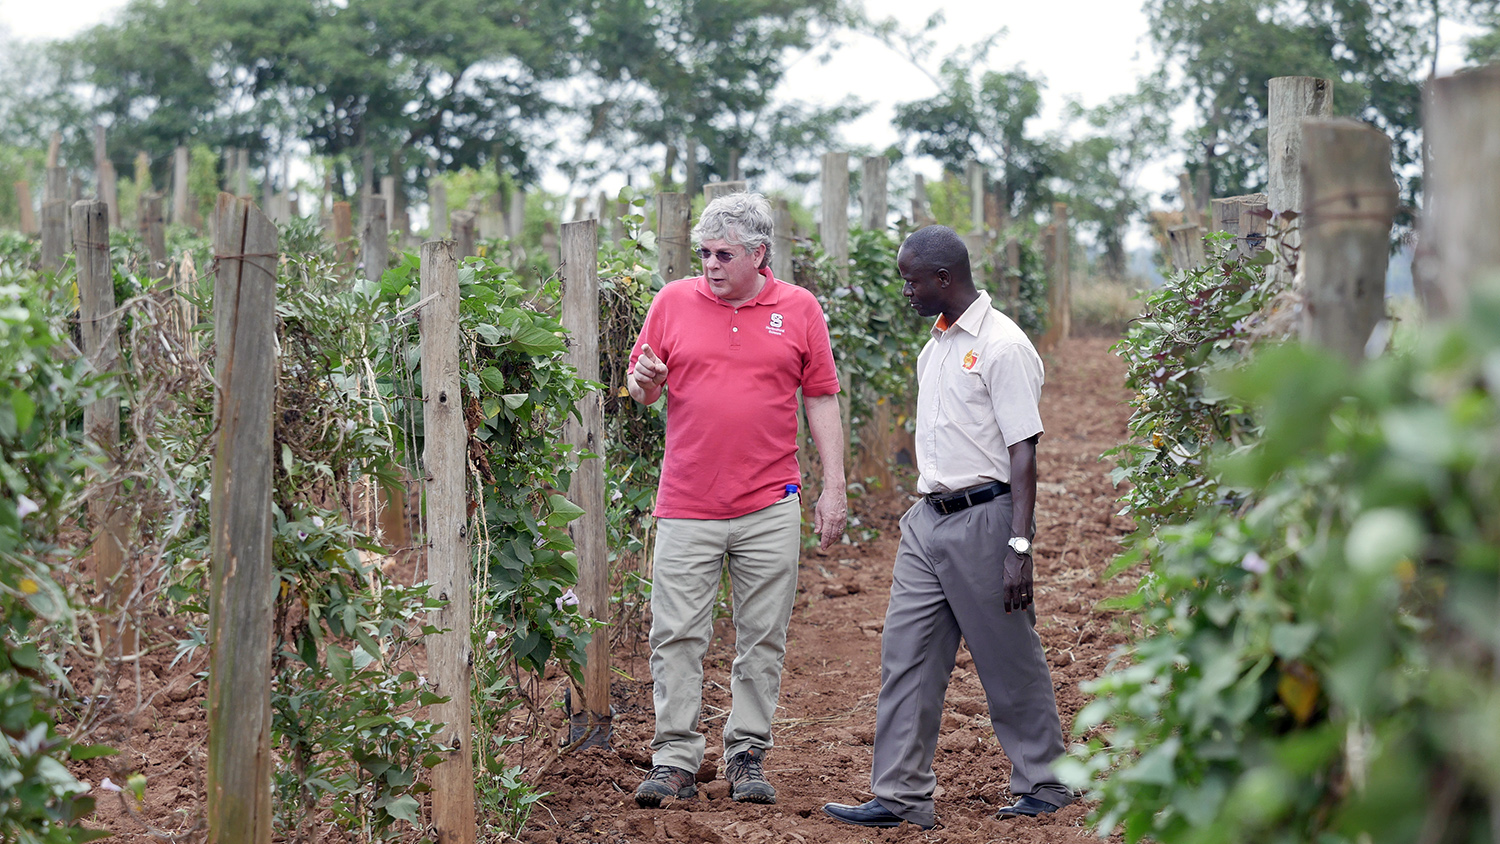 Craig Yencho and Bernard Yada '14, Ph.D., survey sweetpotato vines at a research farm outside Kampala, Uganda.